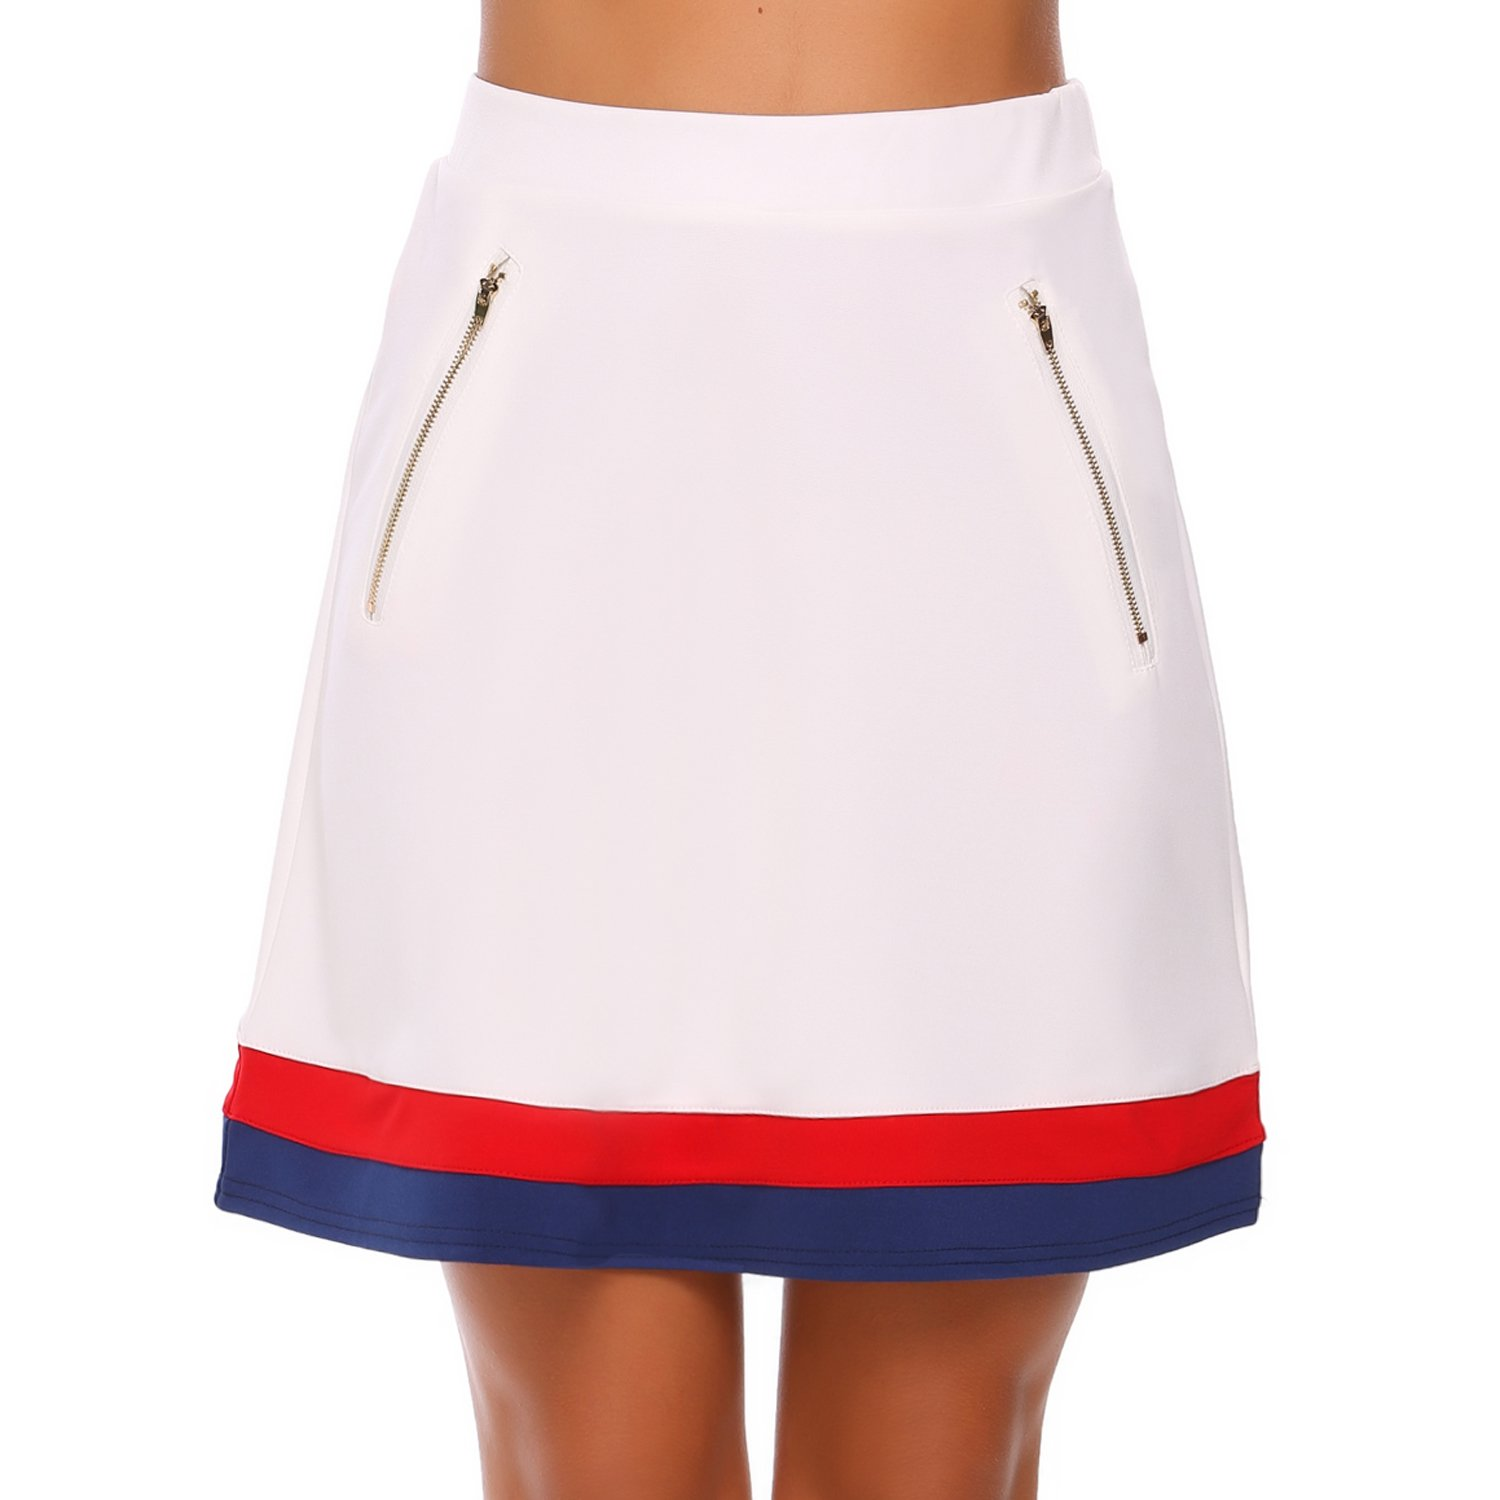 Zeagoo Adult Soft and Cozy Sweatpants Skirt White